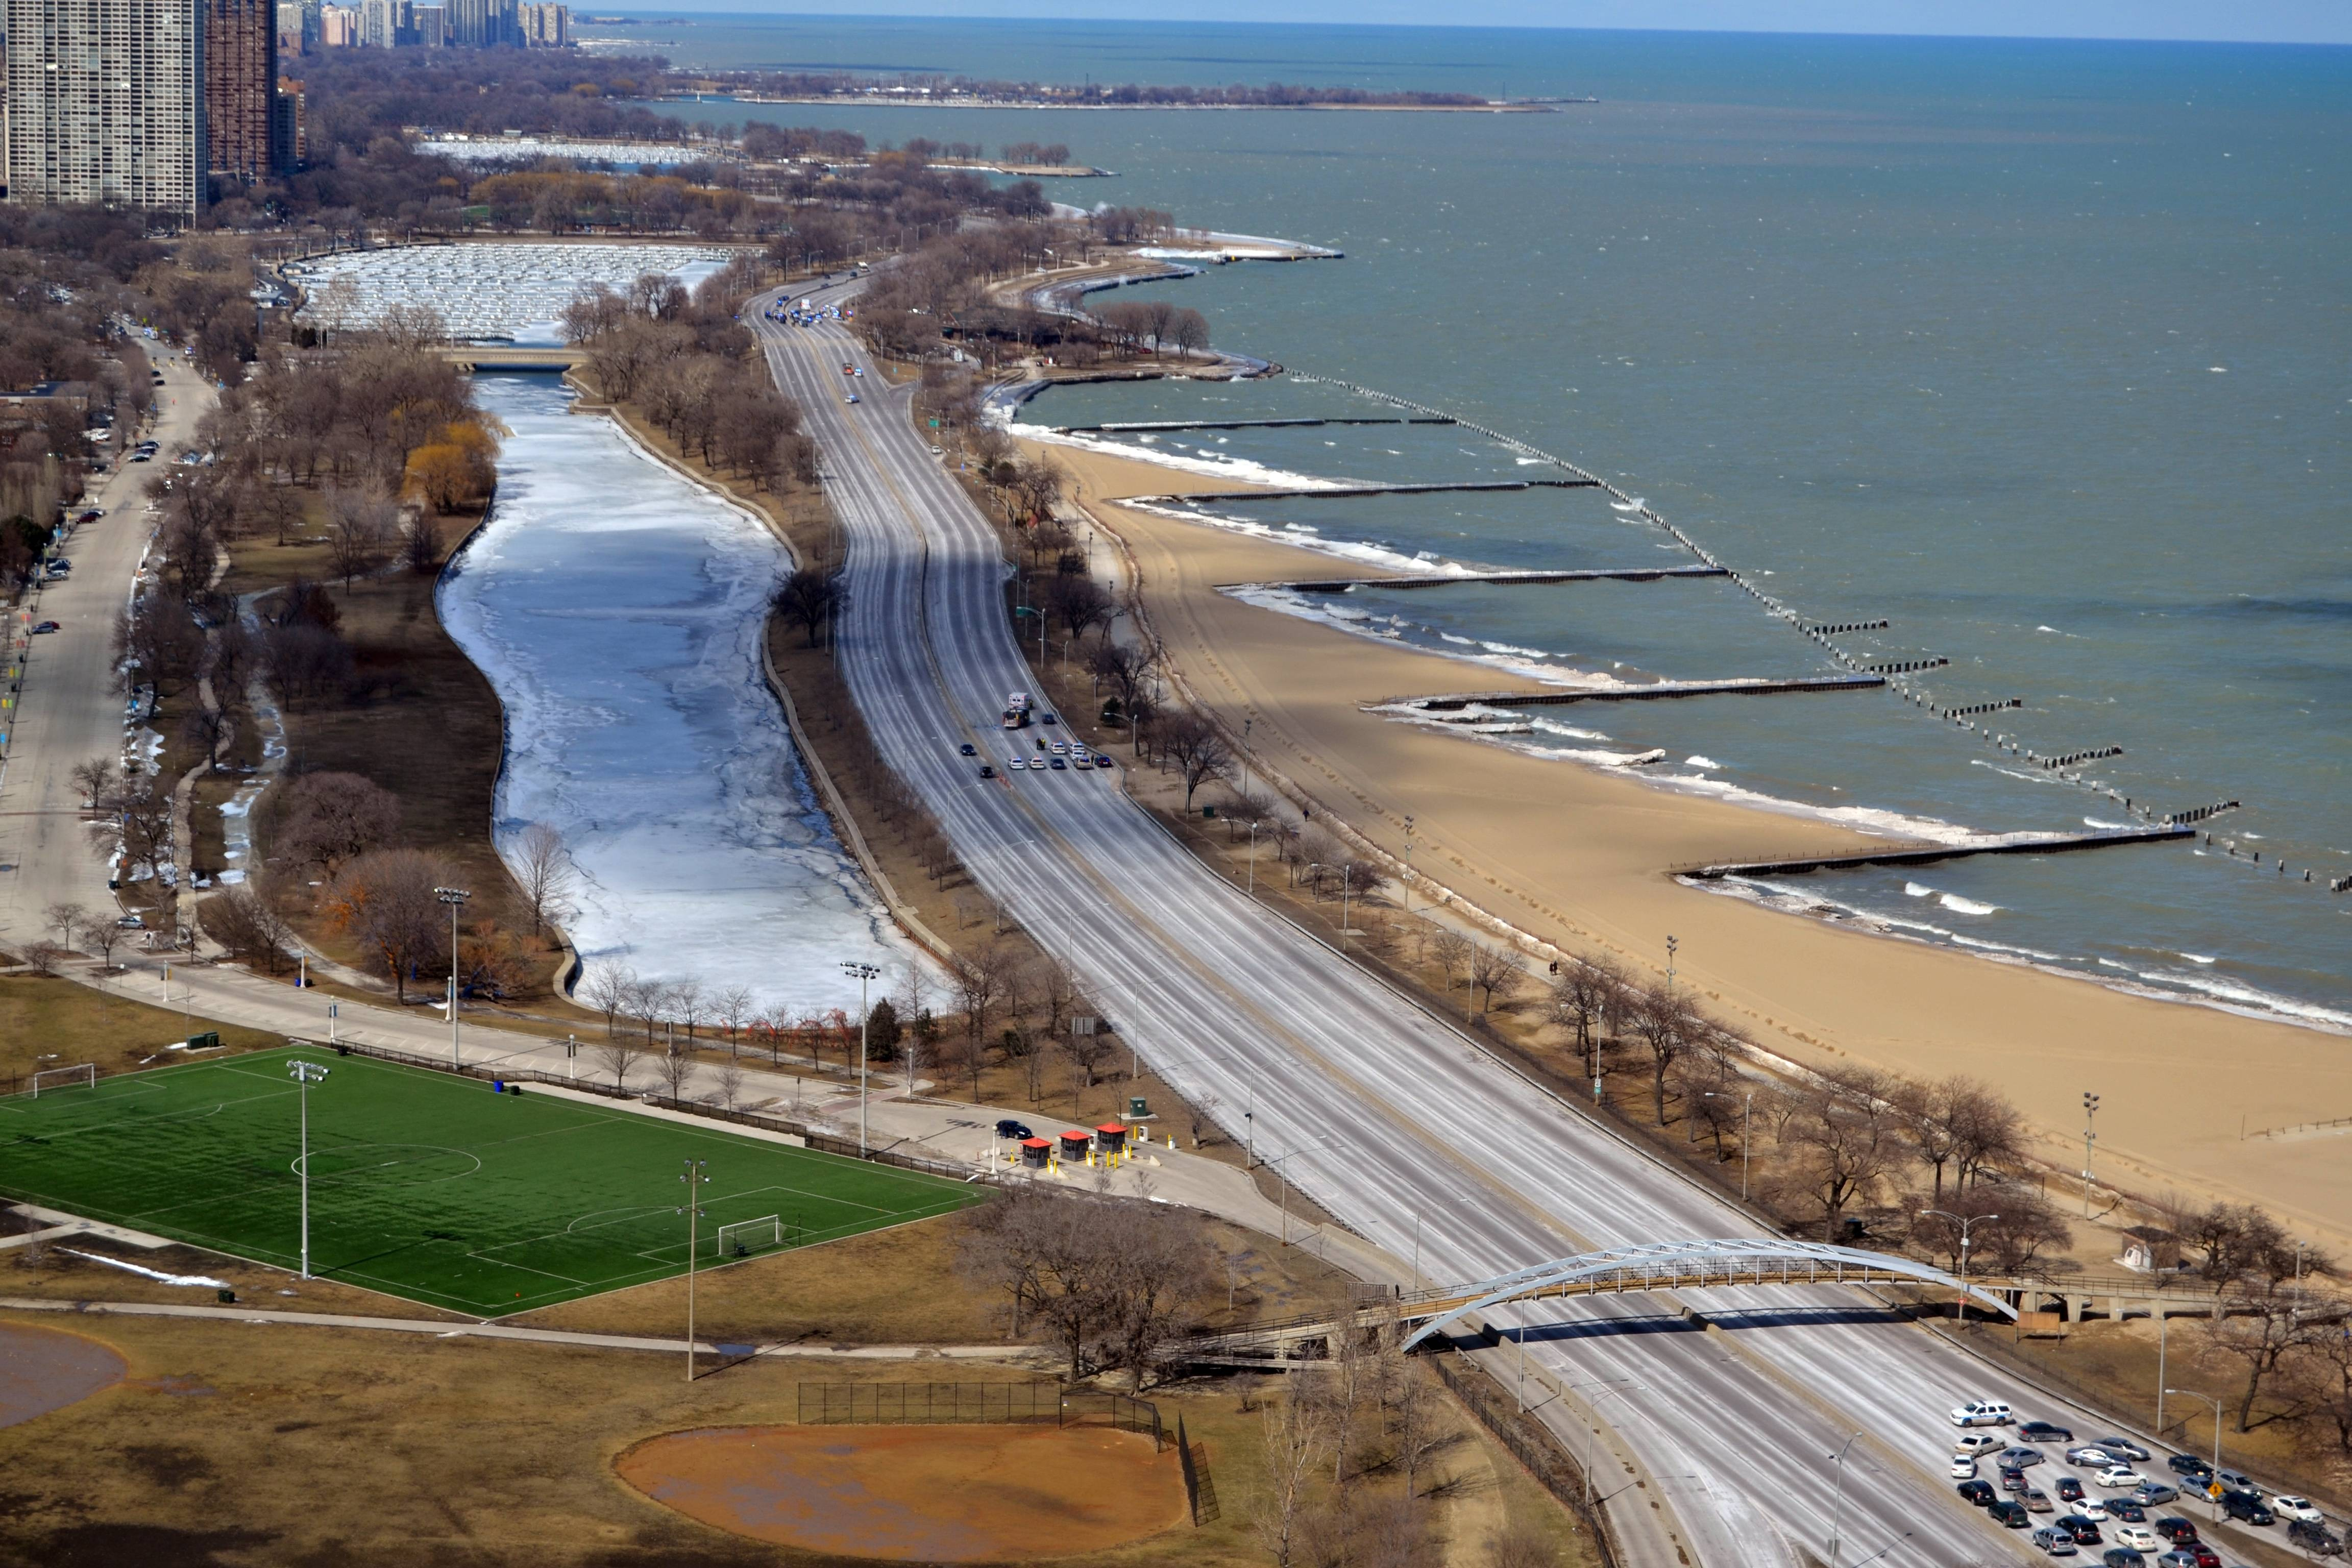 In this photo provided by Ed Bachrach, authorities surround a vehicle on Lake Shore Drive in Chicago, Sunday.